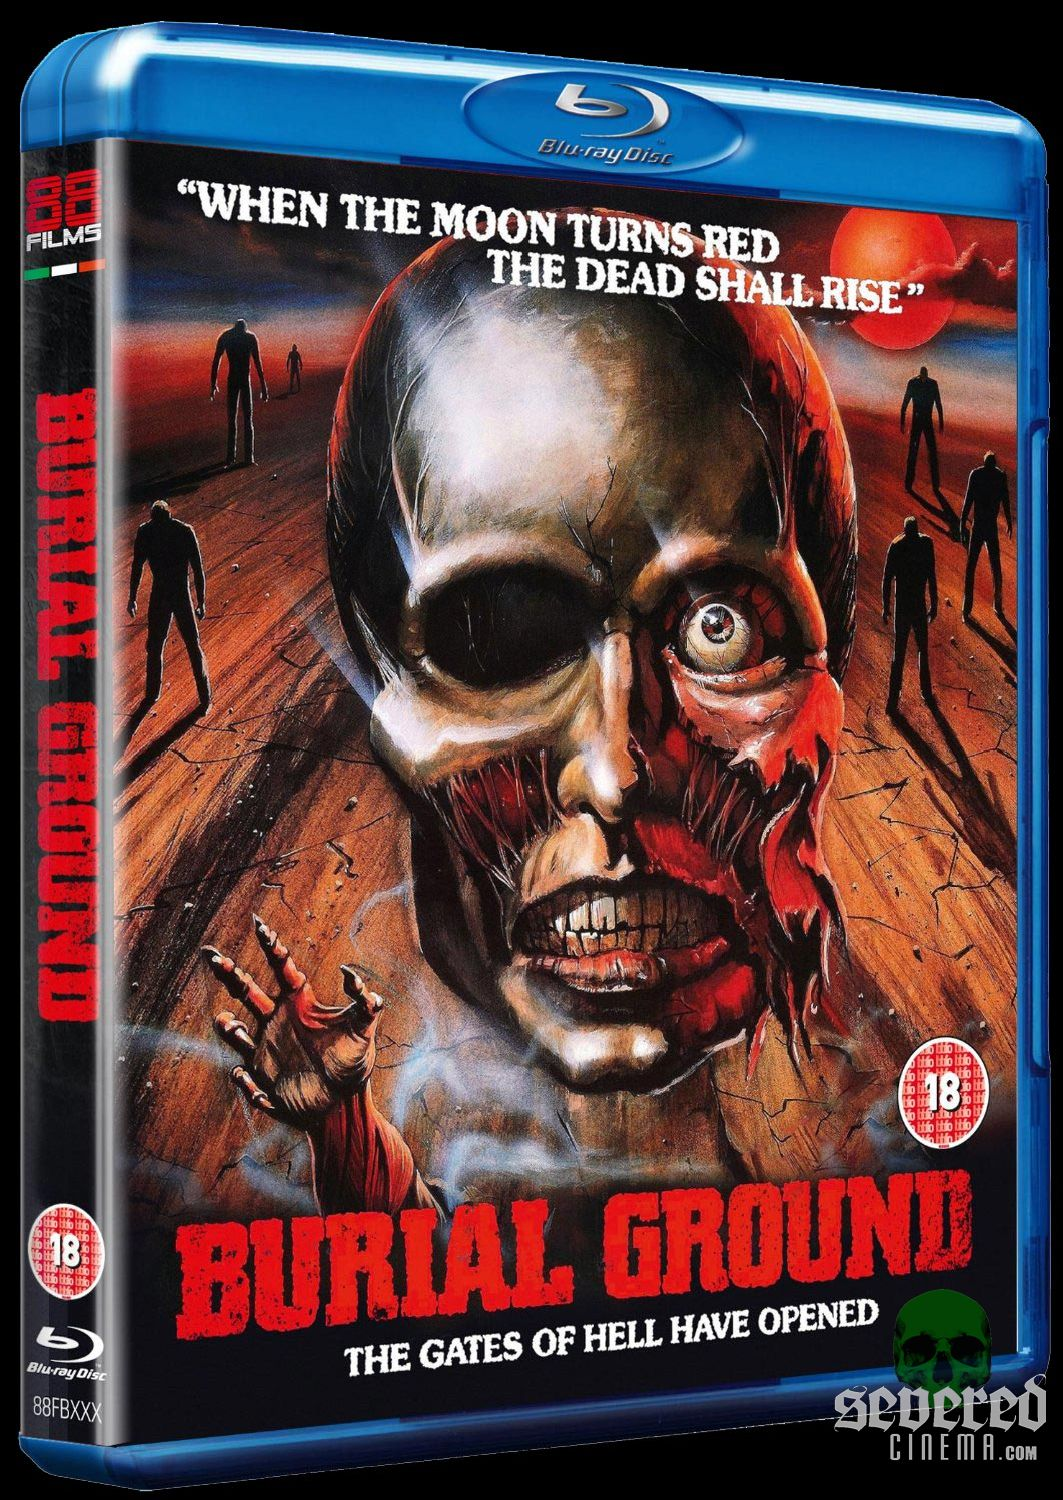 Burial Ground Blu-ray from 88 Films on Severed Cinema